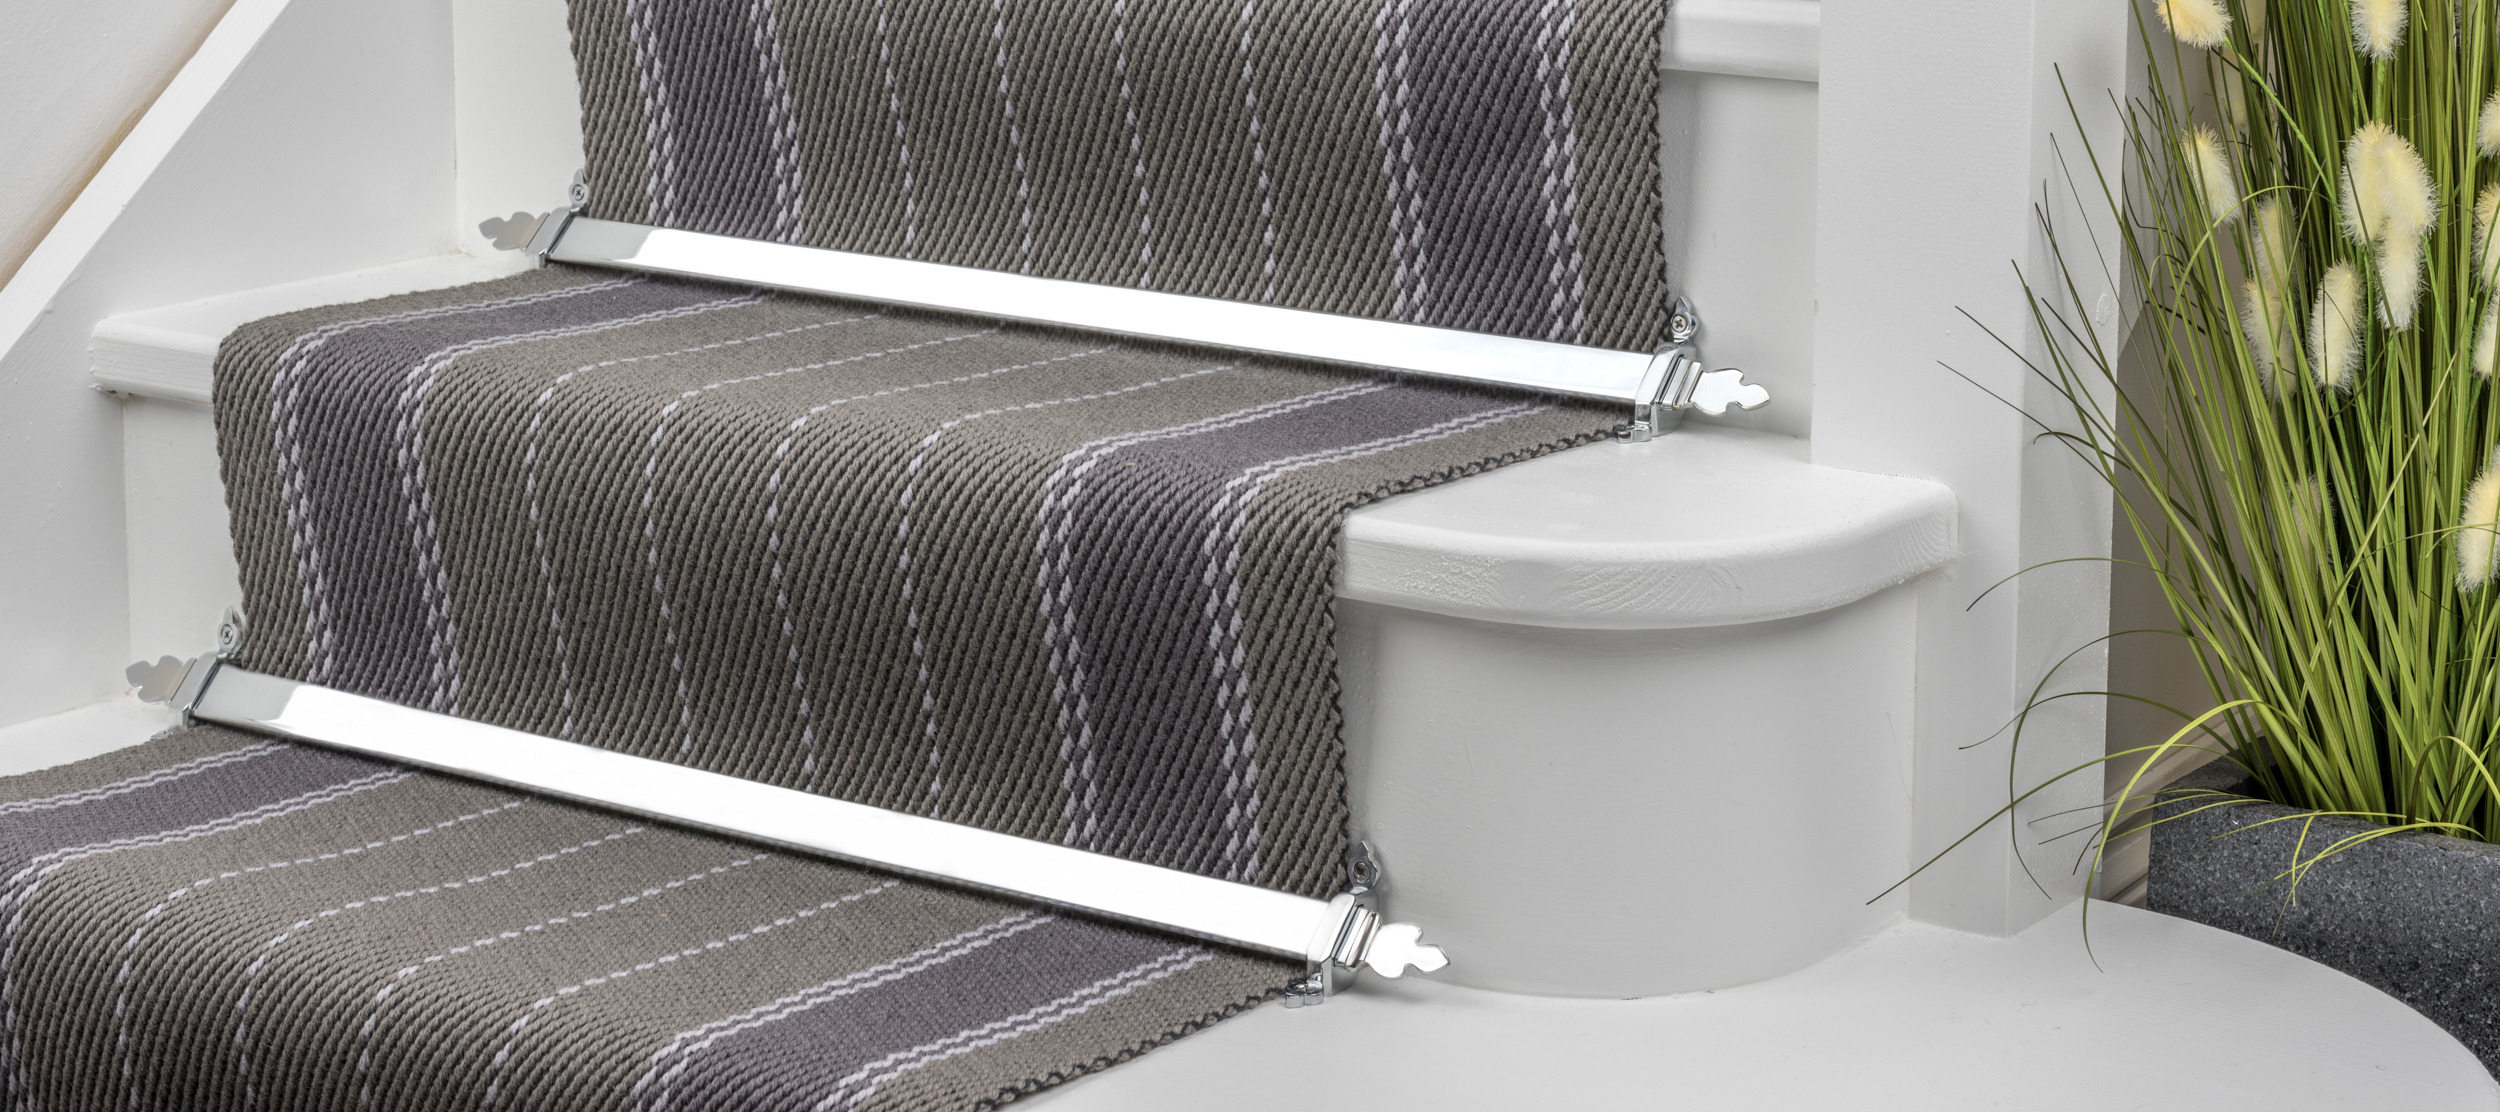 stairrods-chrome-royale-beaumont.jpg